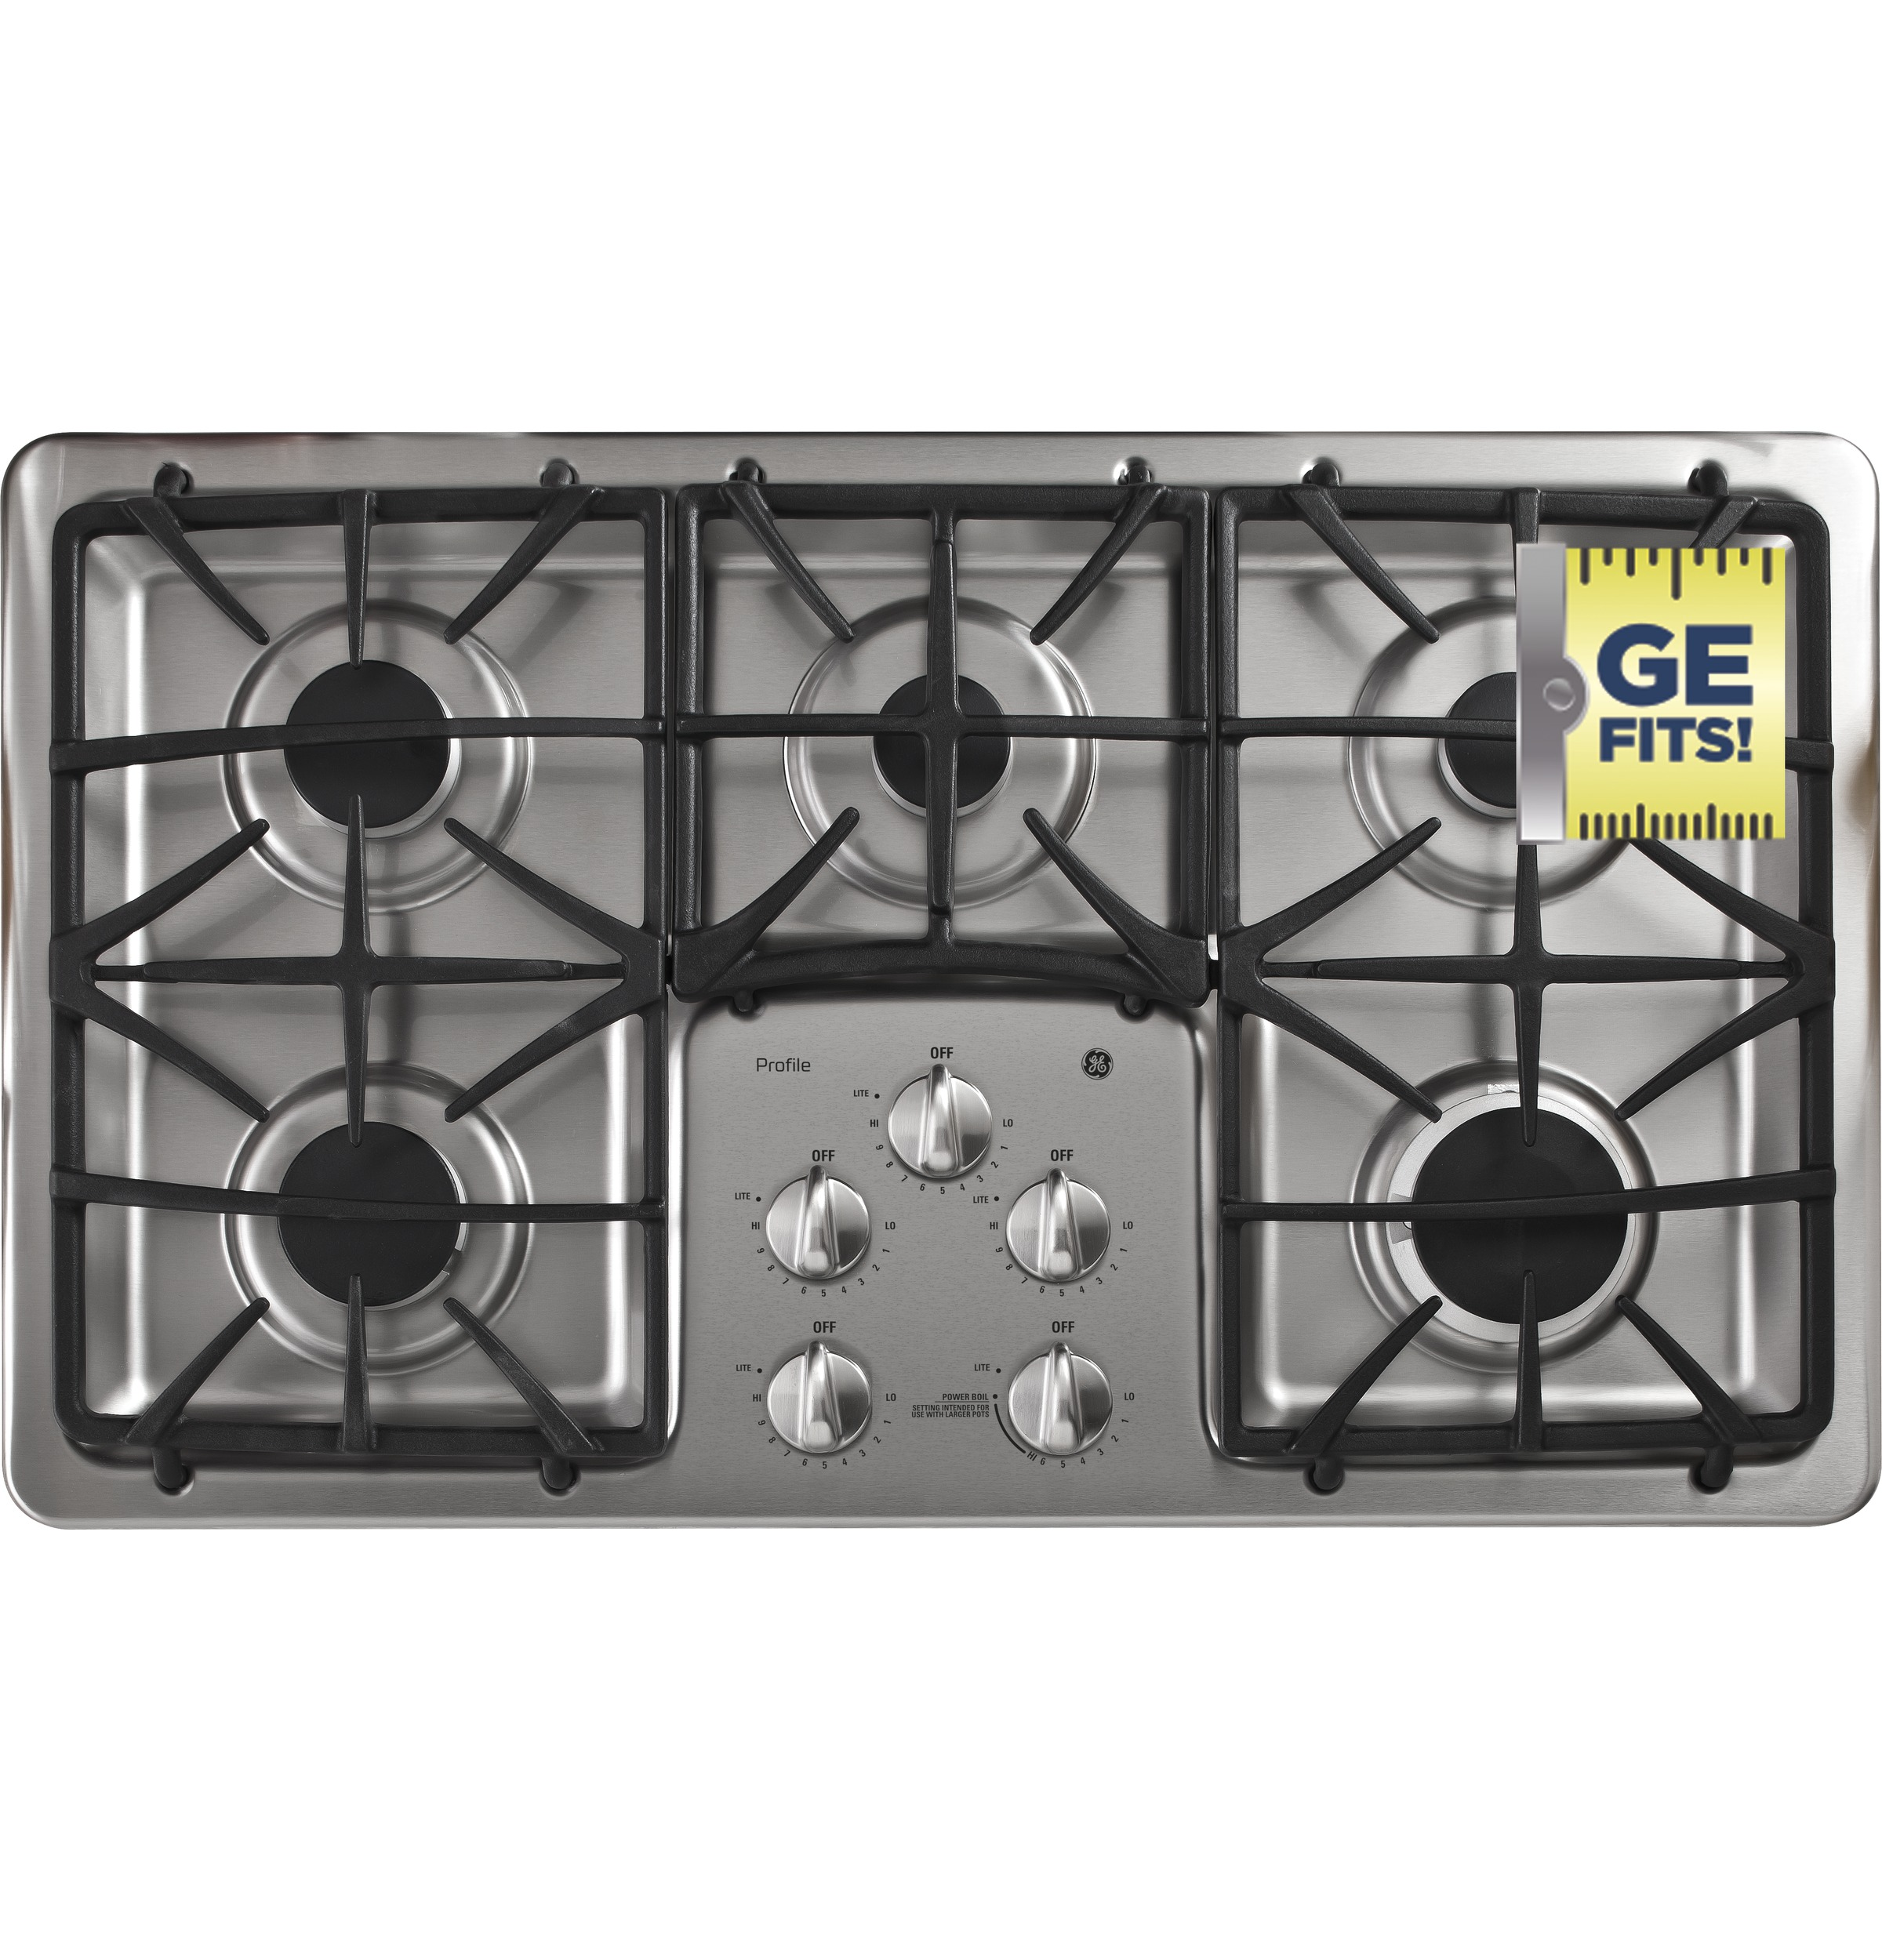 GE PGP966SETSS PROFILE™ SERIES 36u2033 BUILT IN GAS COOKTOP (Floor Model)